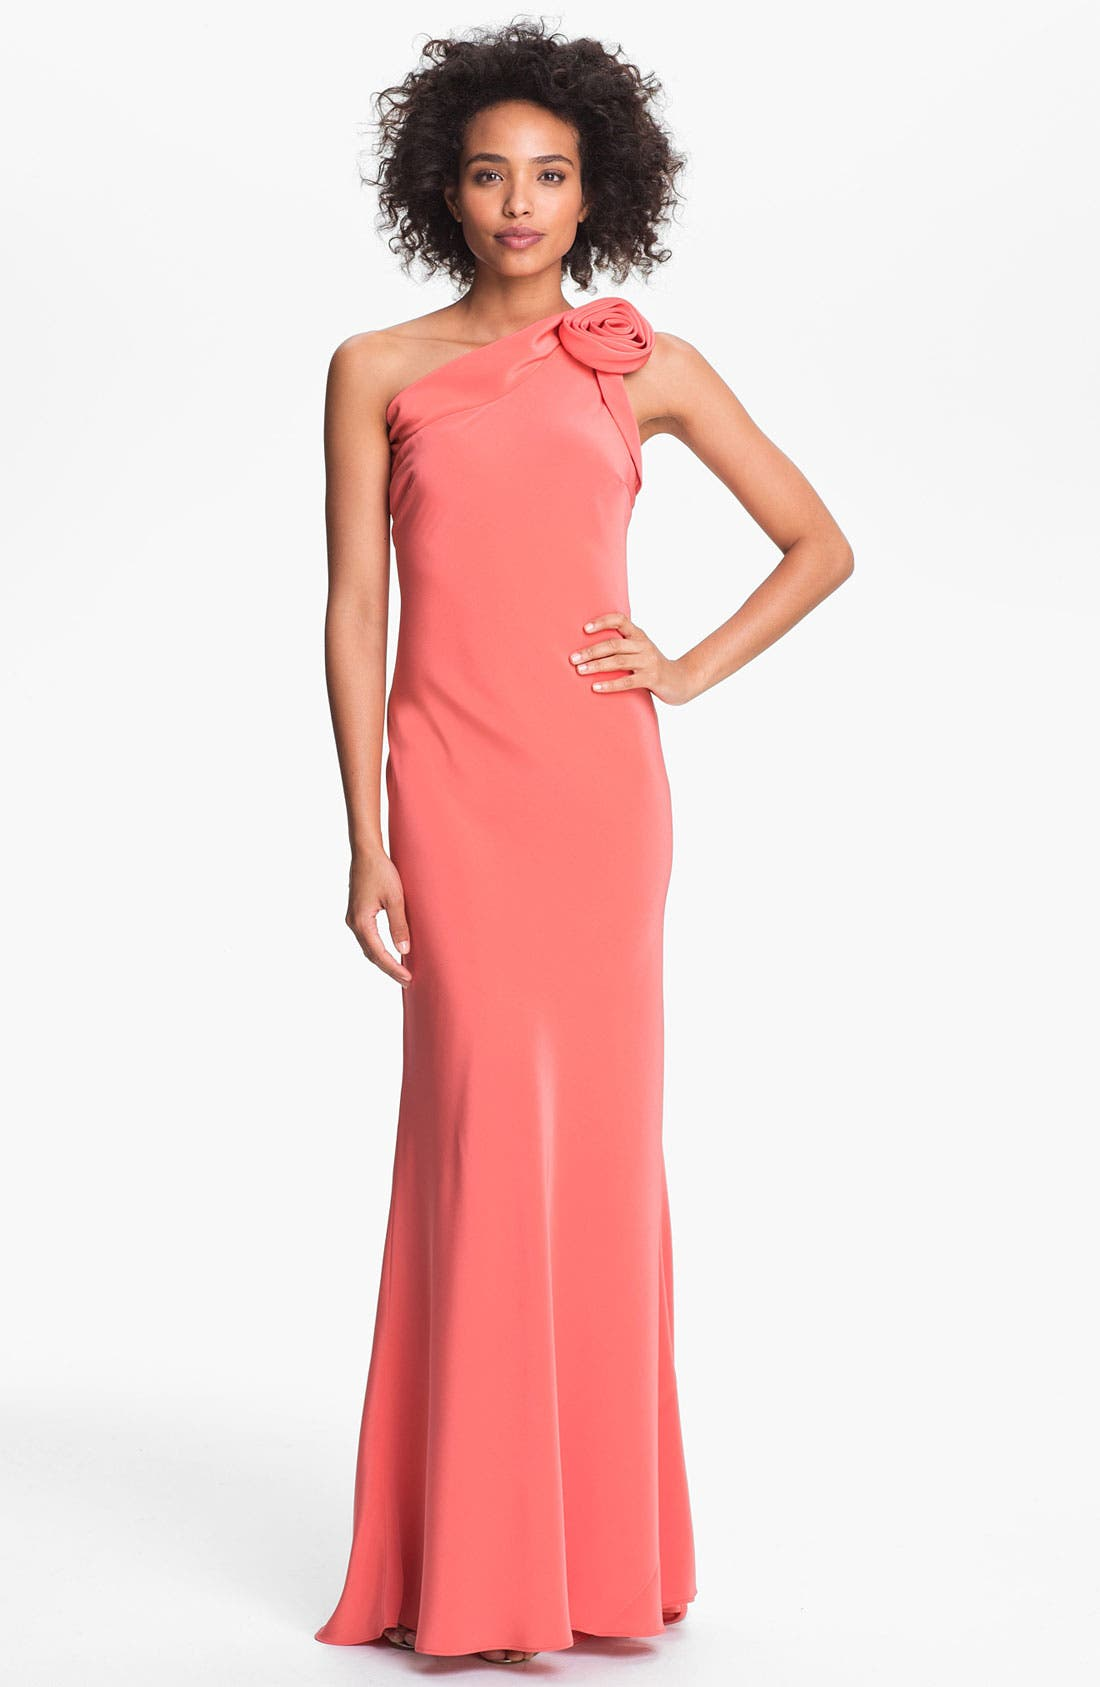 Main Image - A.B.S. by Allen Schwartz One Shoulder Gown